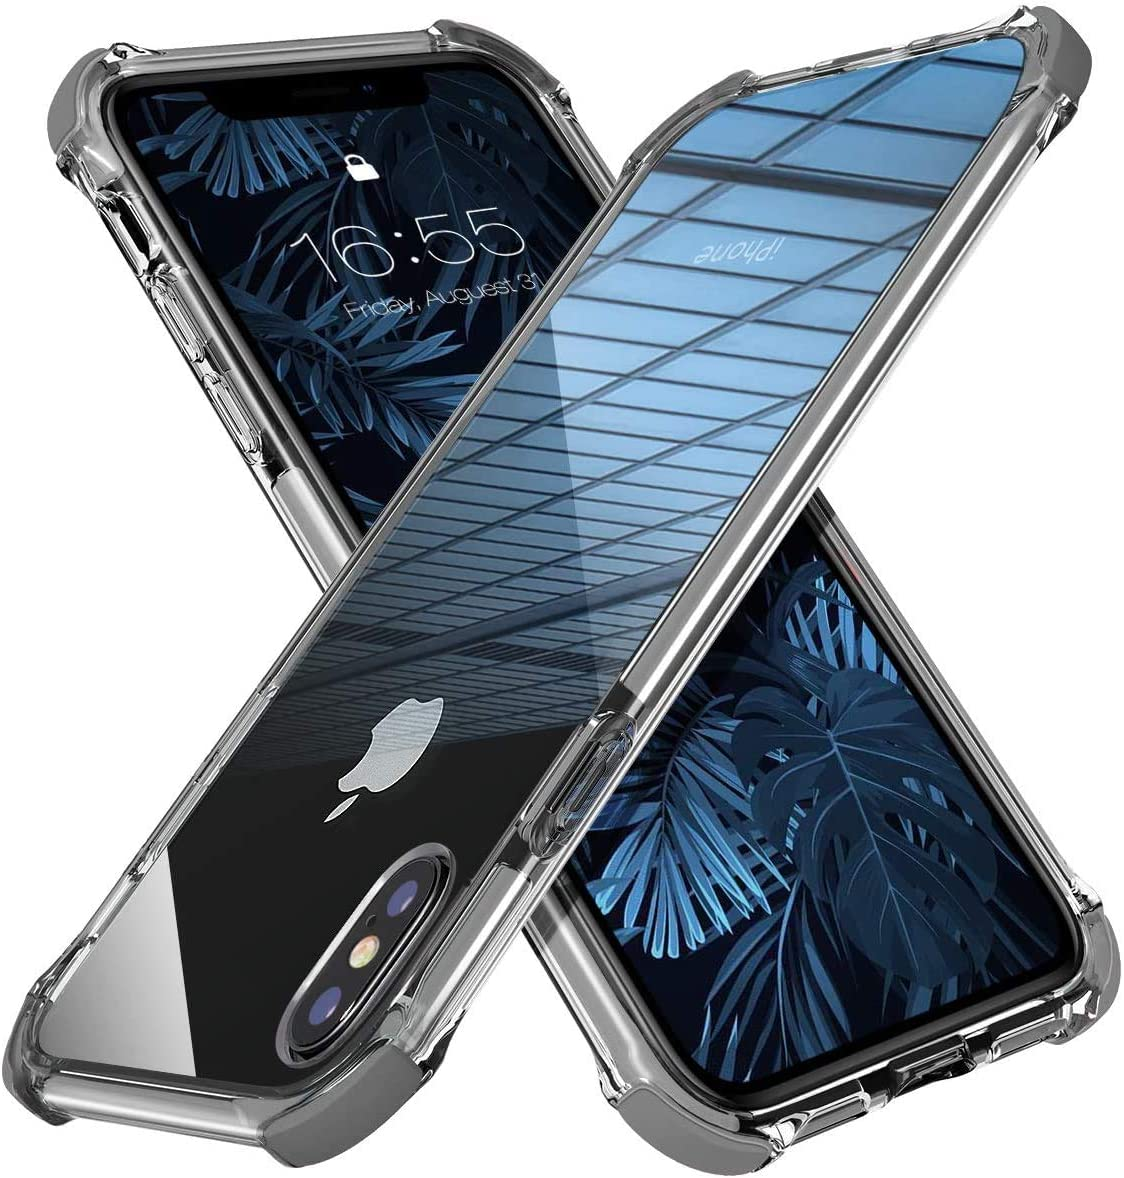 MATEPROX iPhone Xs Case iPhone X Case Clear Hybrid TPU Hard Cover with Thin Shockproof Bumper Protective Case for iPhone Xs/X 5.8'' (Gray)